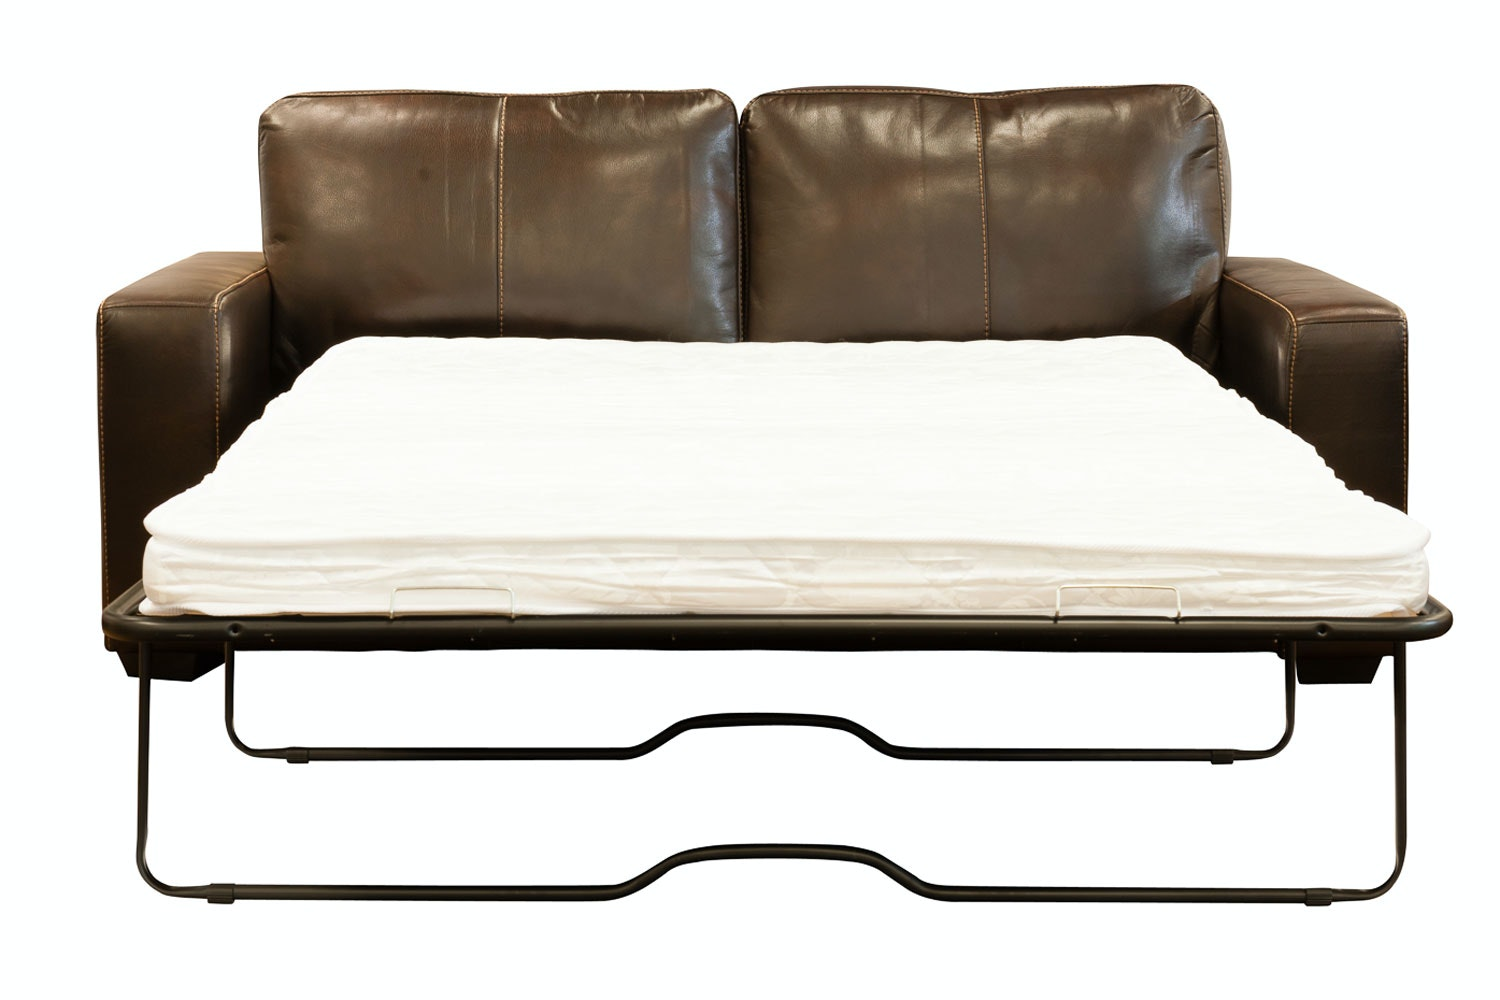 Catalunya 3 Seater Sofa Bed